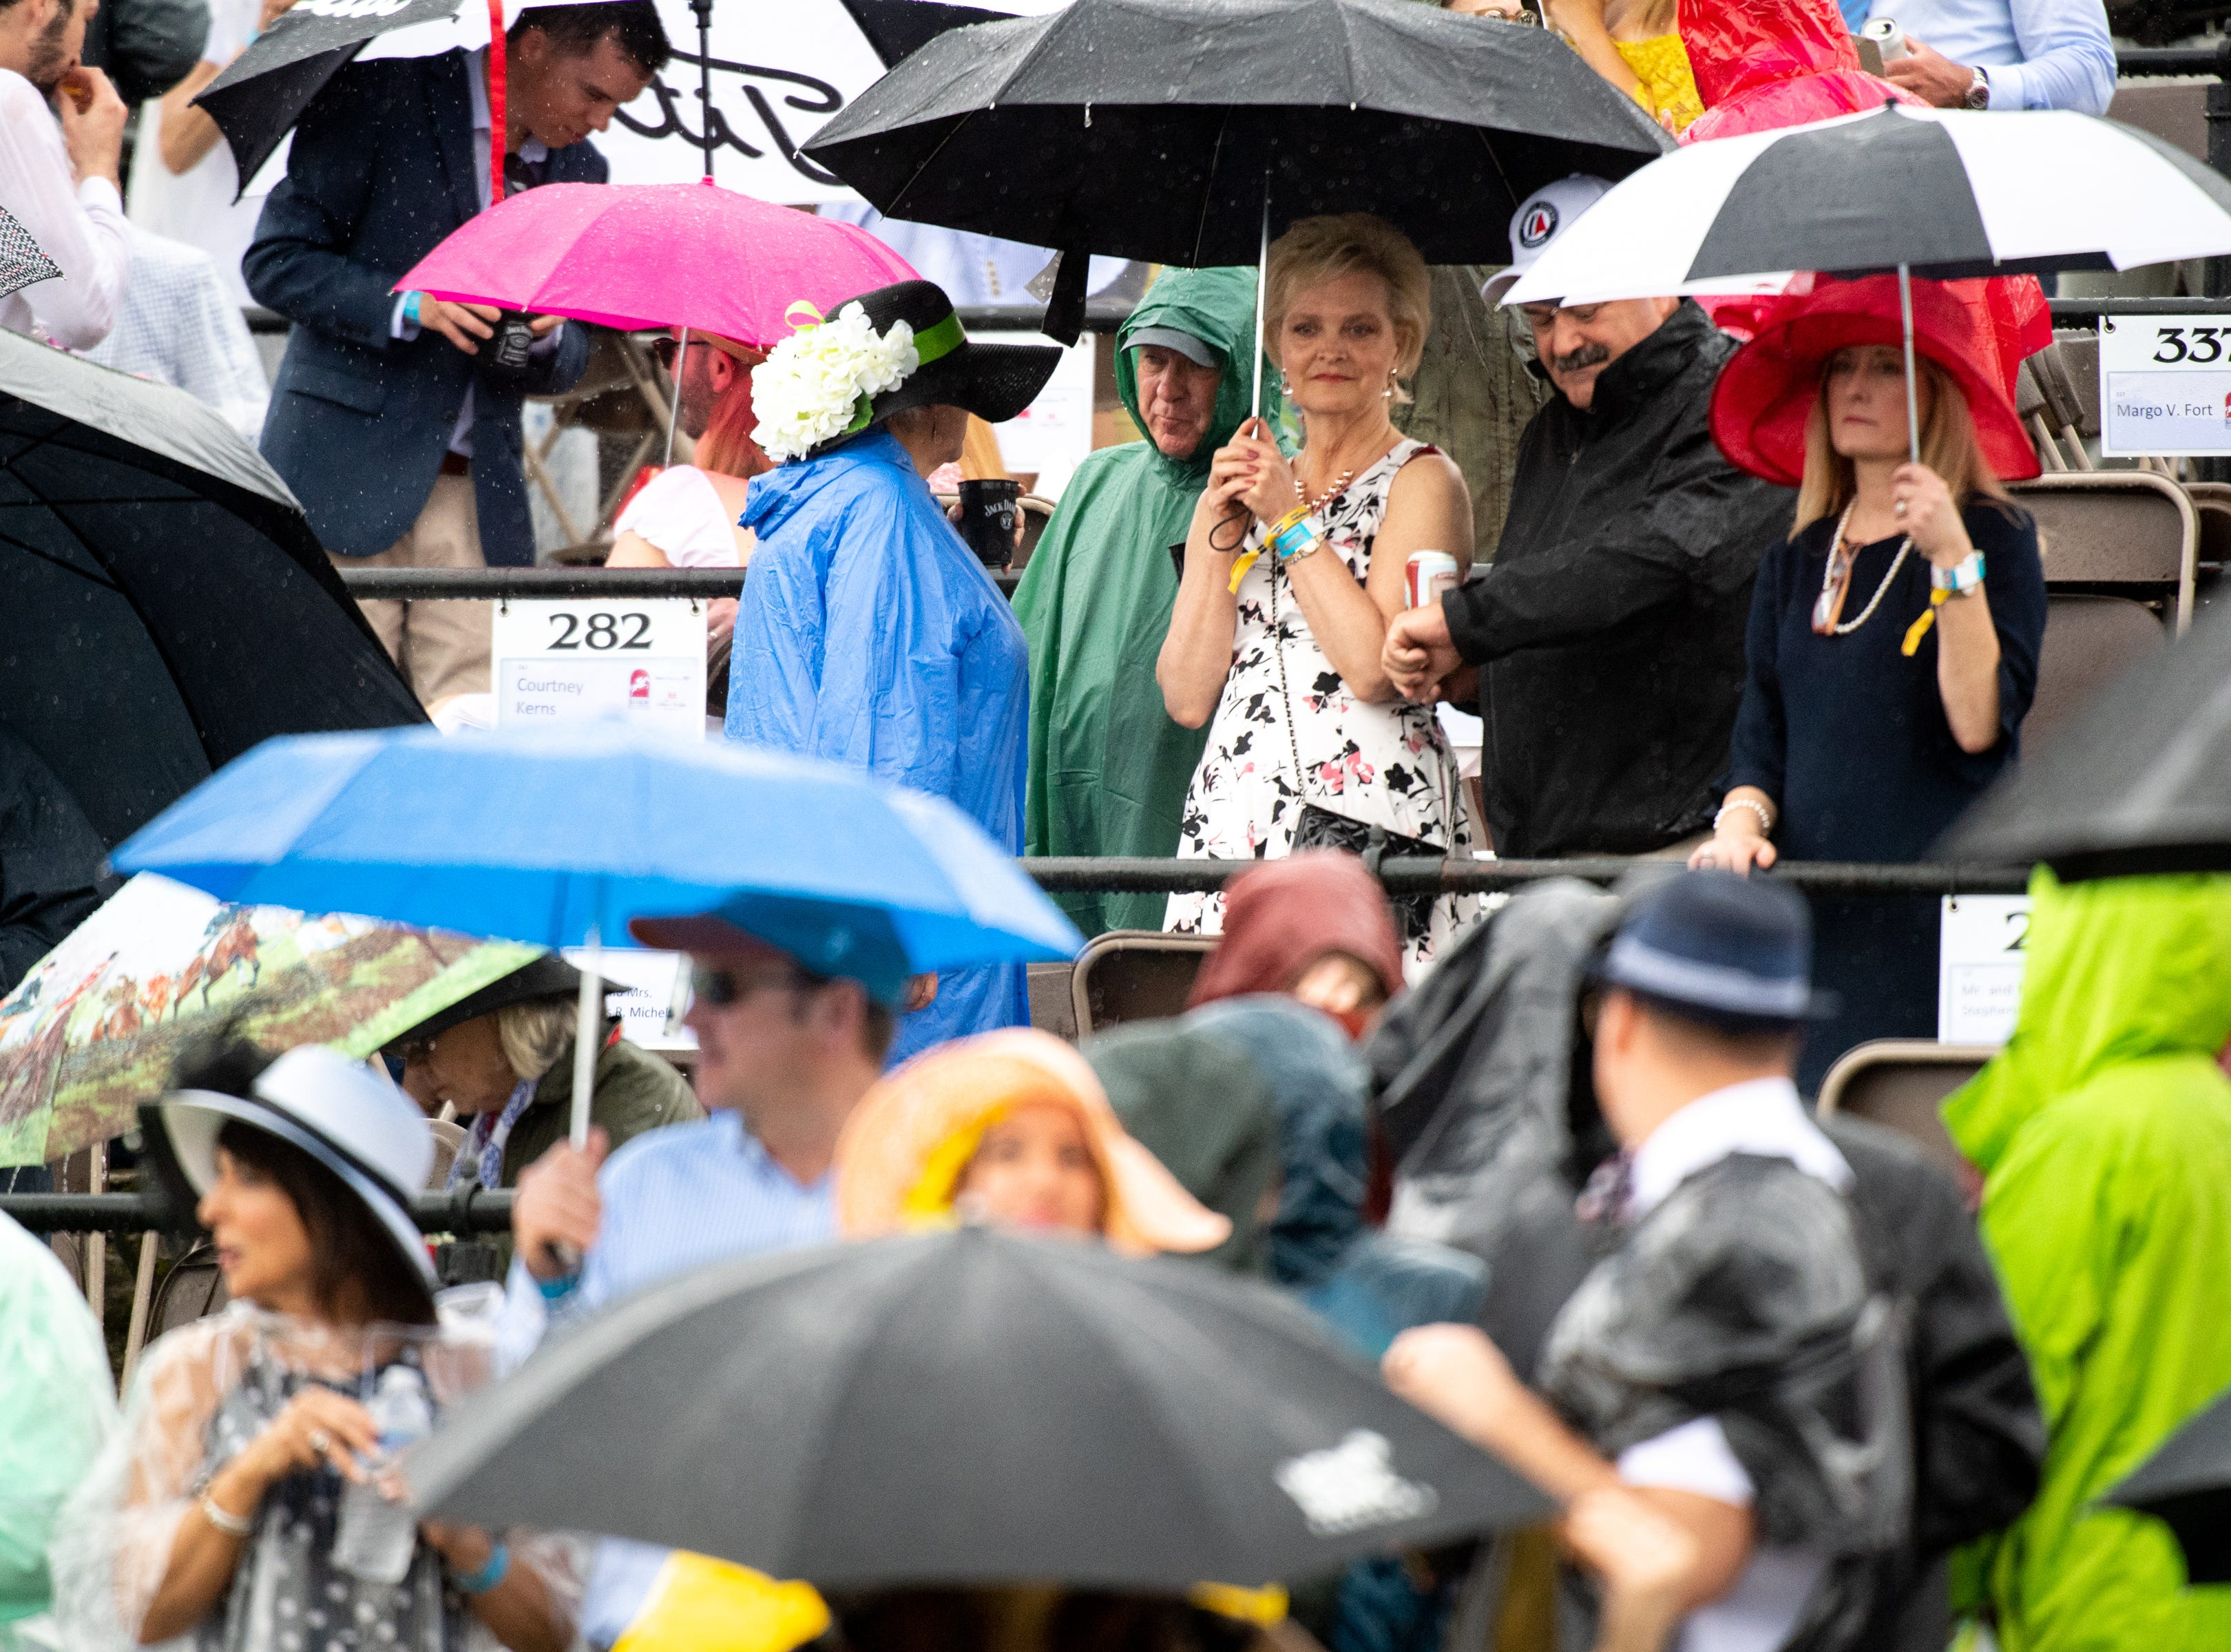 Spectators prepare as it starts to rain during the Iroquois Steeplechase at Percy Warner Park Saturday, May 11, 2019, in Nashville, Tenn.